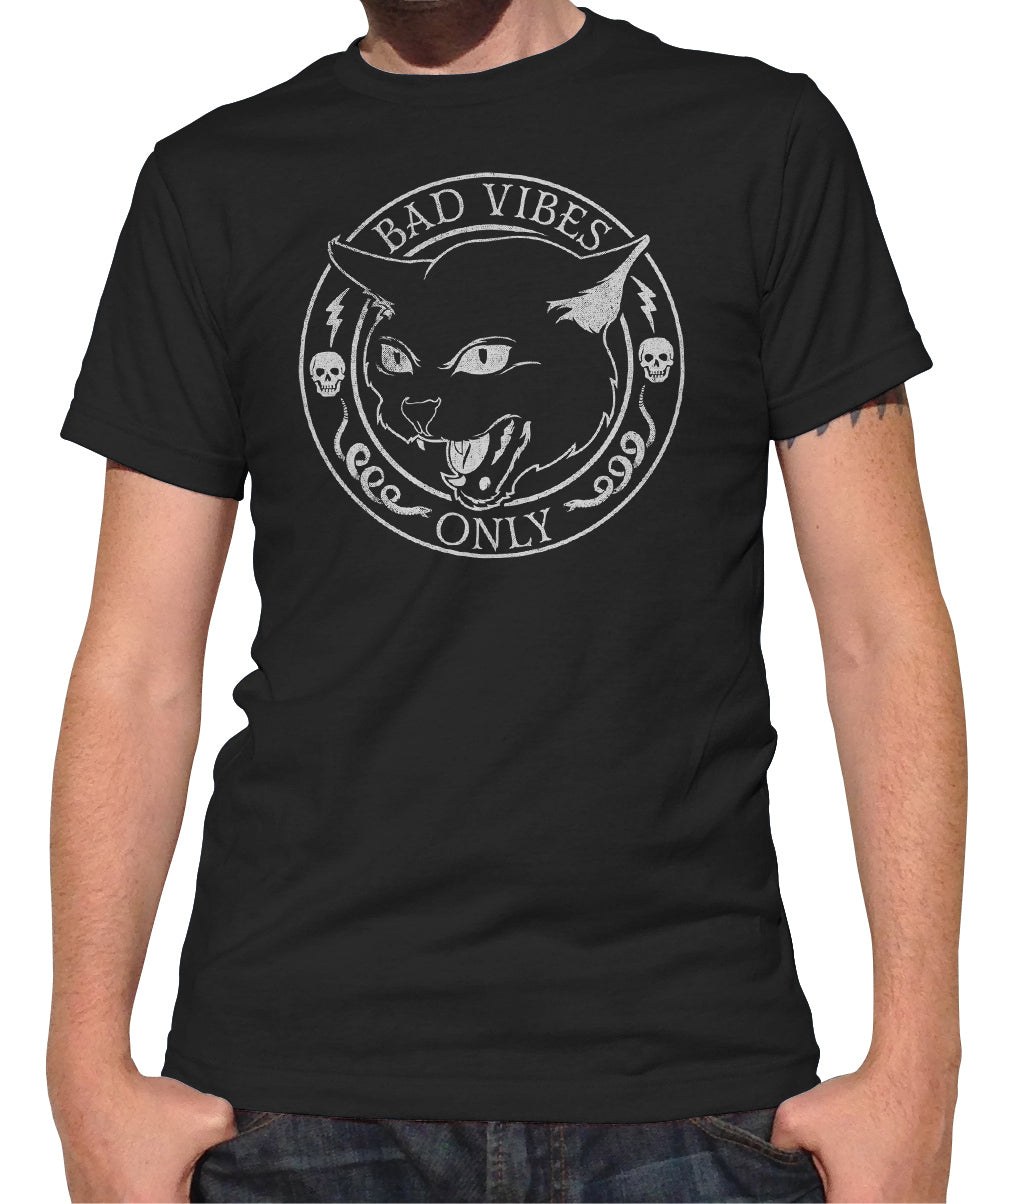 Men's Bad Vibes Only T-Shirt - Goth Shirt - Black Cat Shirt